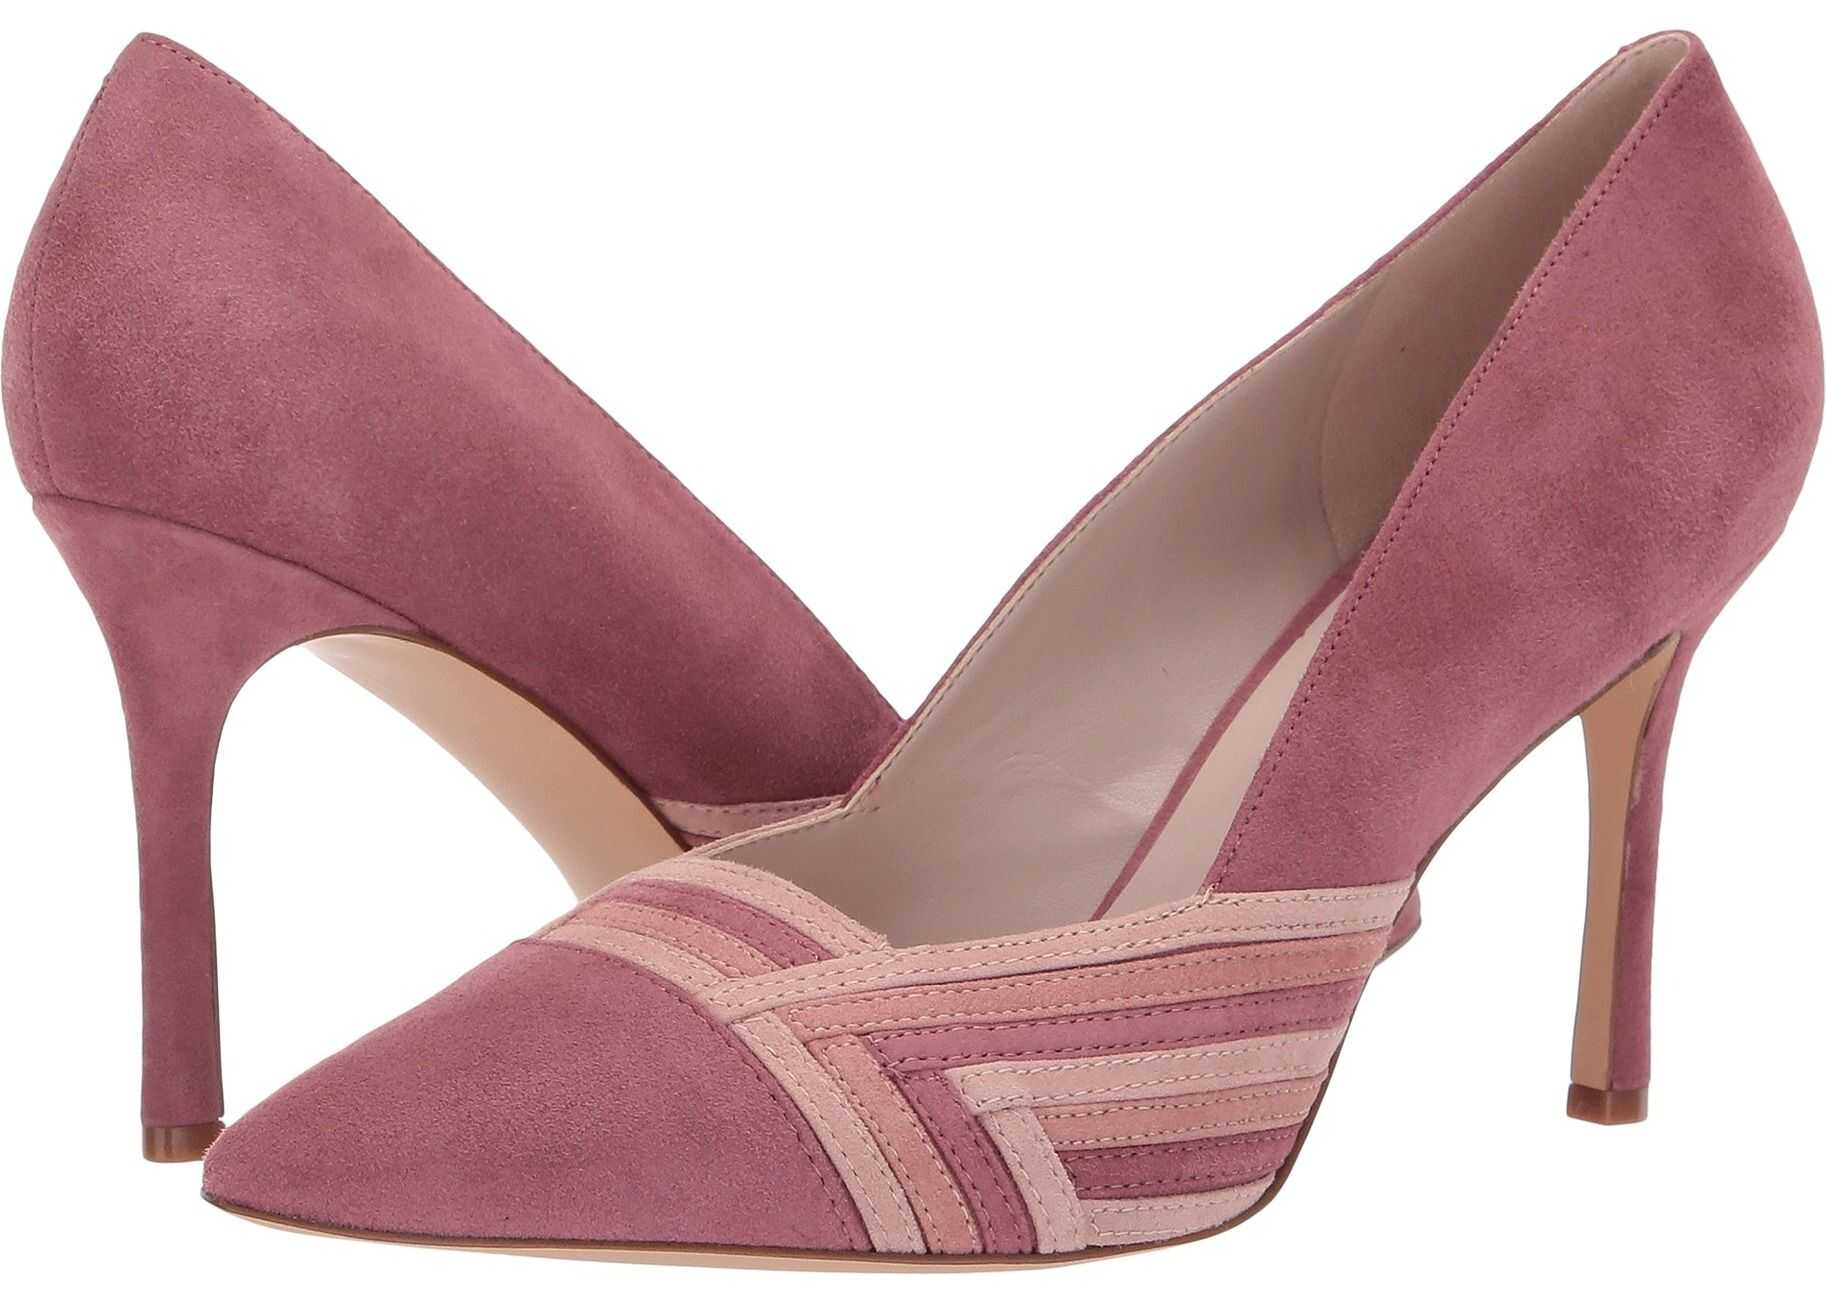 Nine West Eugene Pump Peony/Dusty Coral/Modern Pink